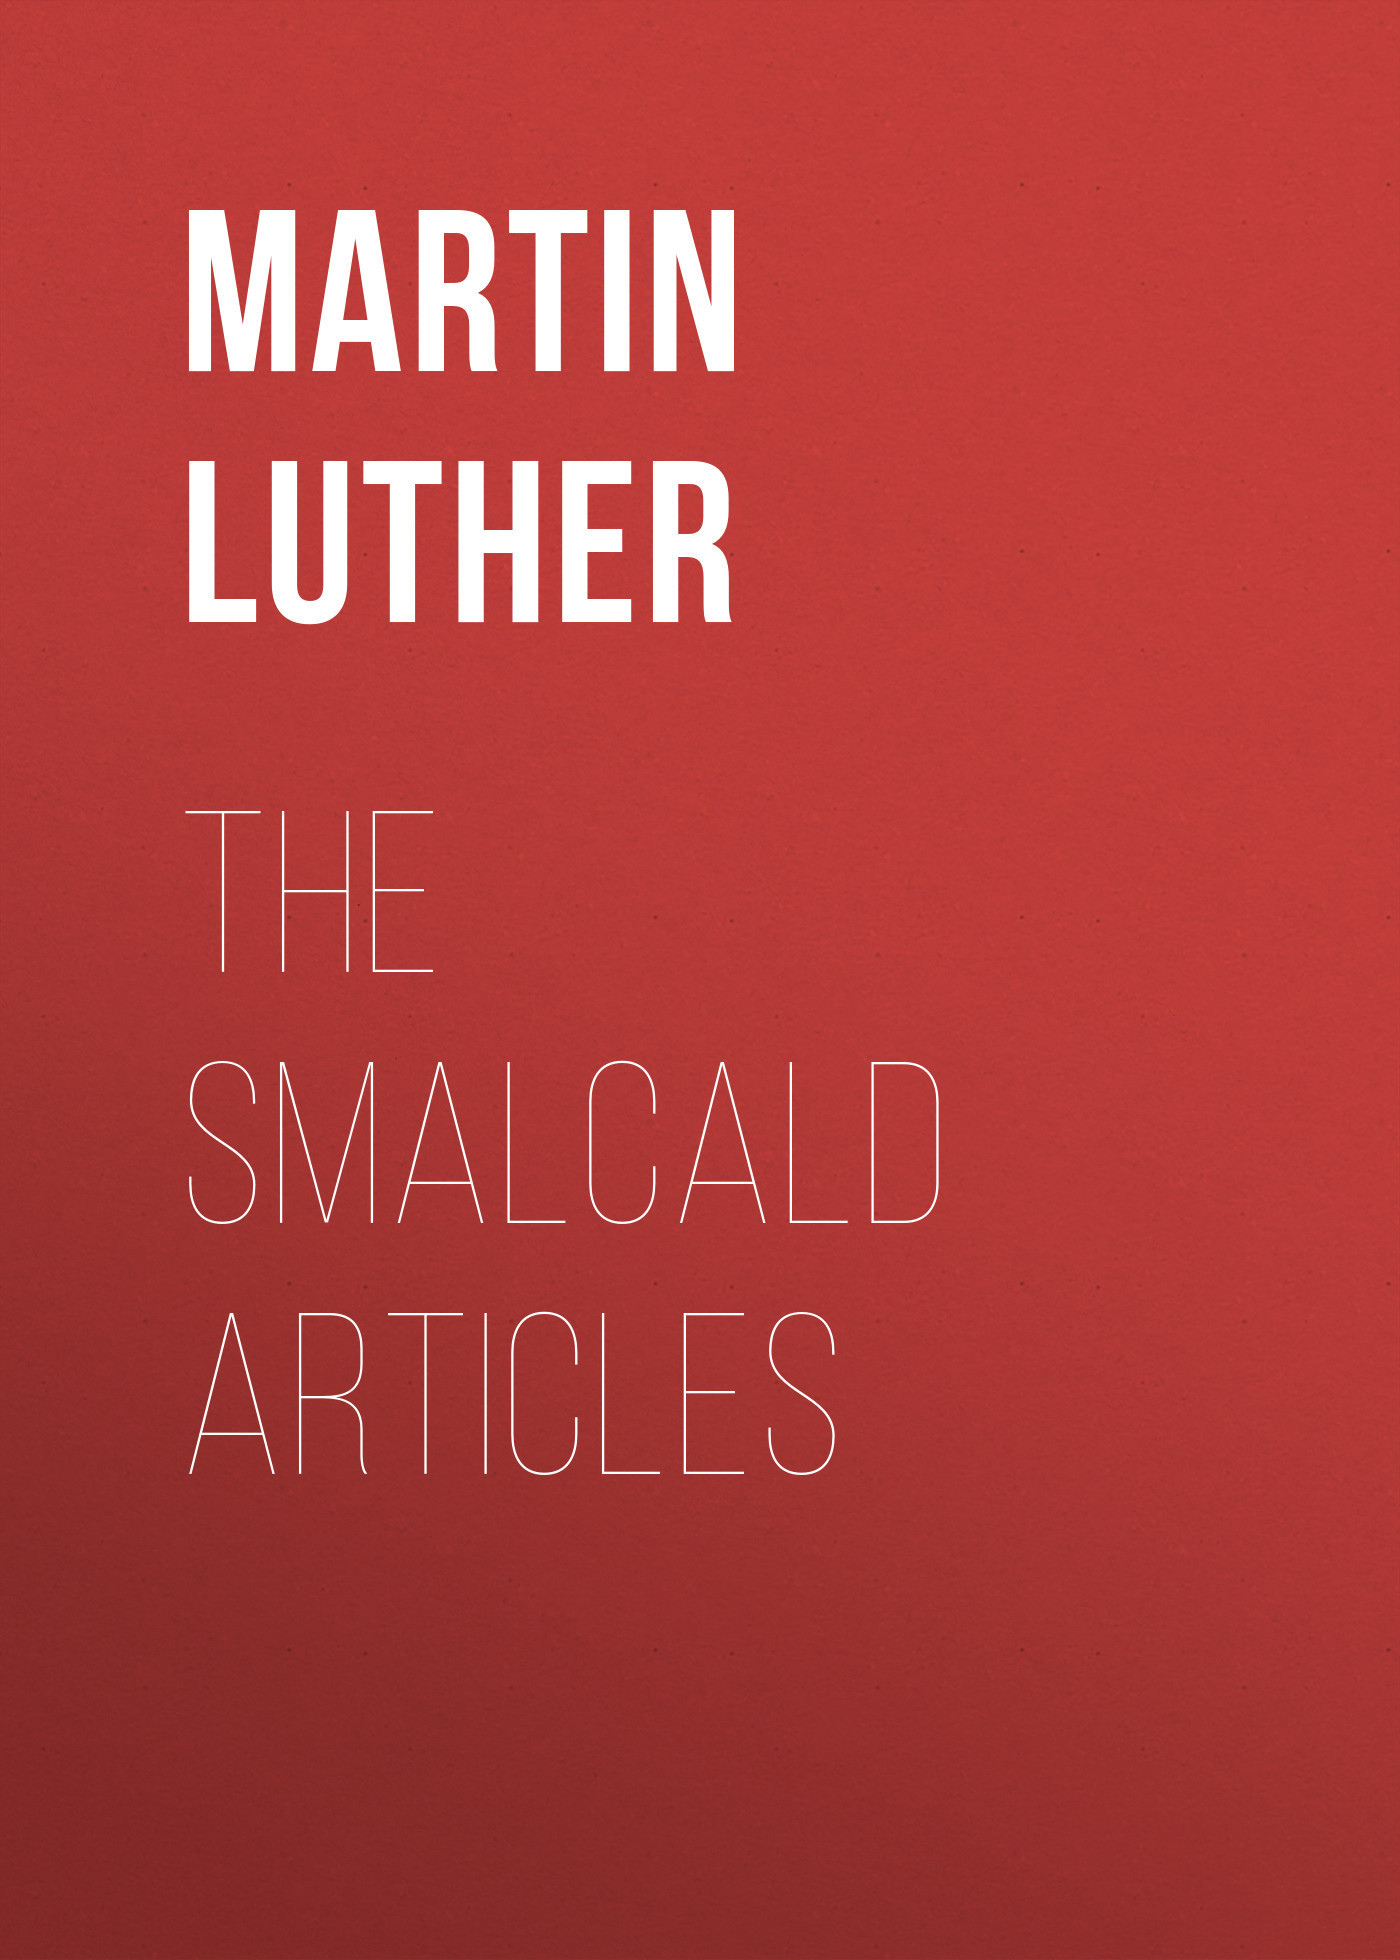 Martin Luther The Smalcald Articles martin luther dr martin luther s deutsche geistliche lieder